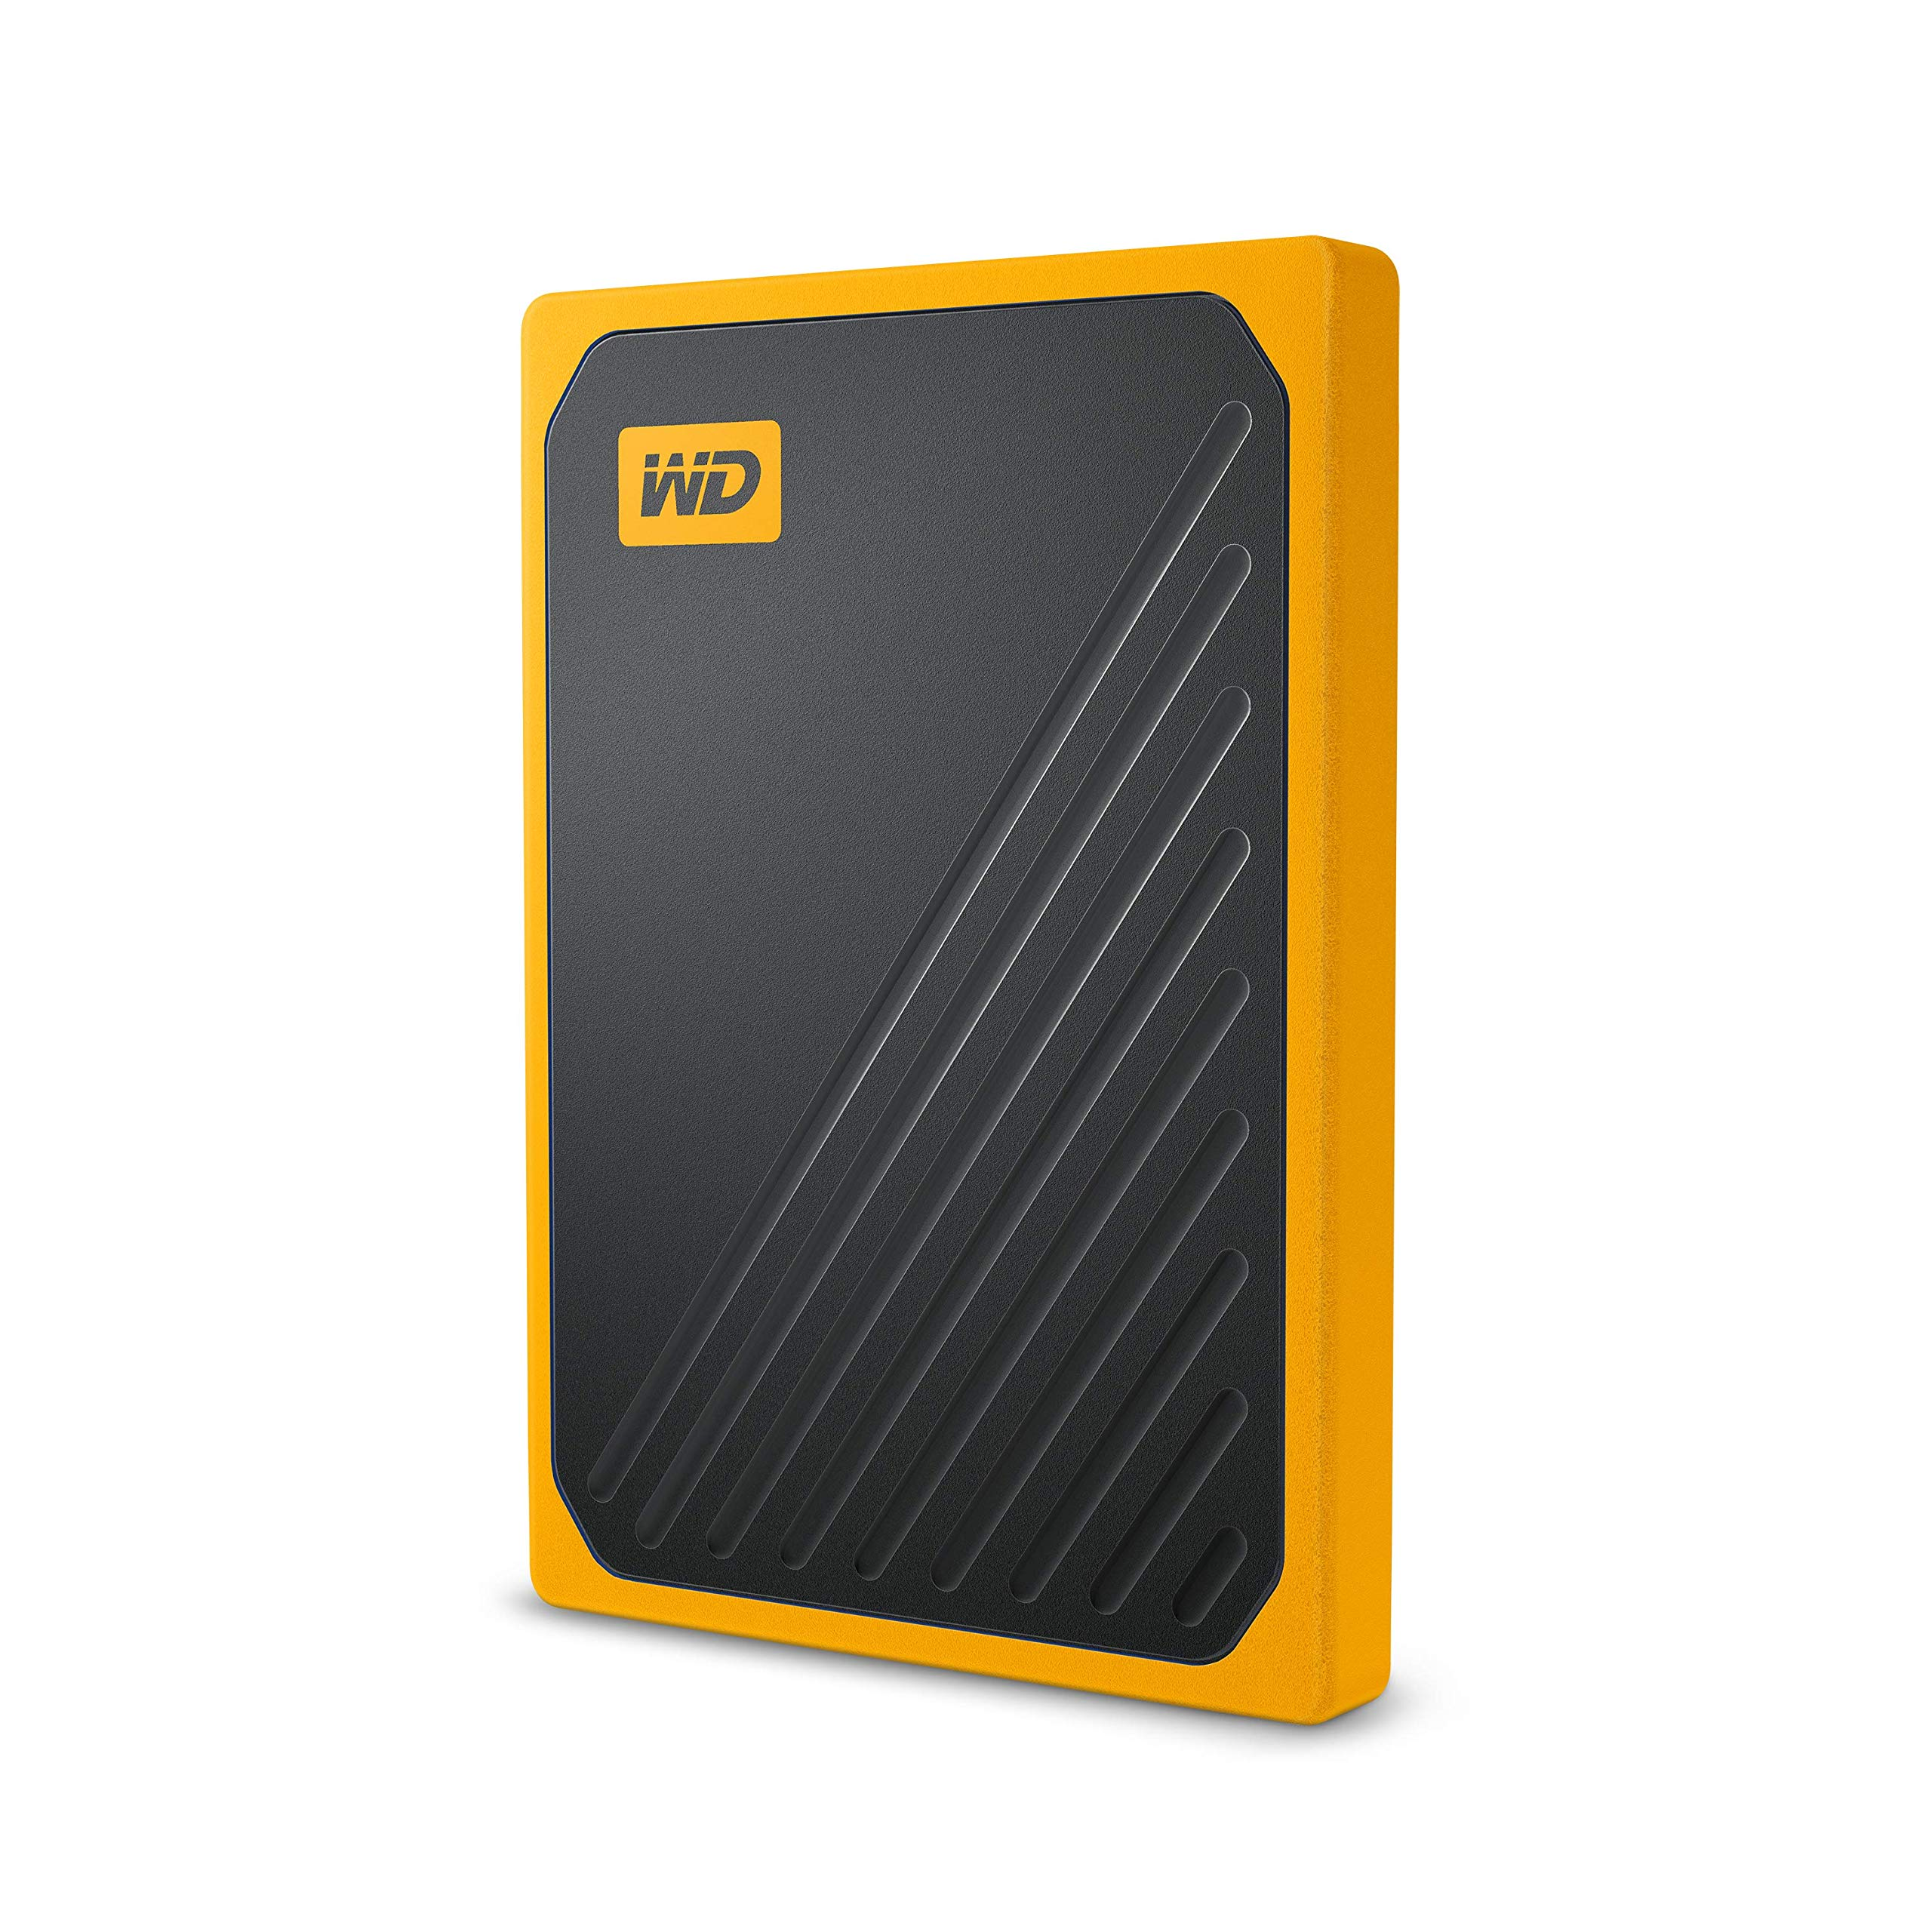 WD 1TB My Passport Go SSD Amber Portable External Storage, USB 3.0 - WDBMCG0010BYT-WESN